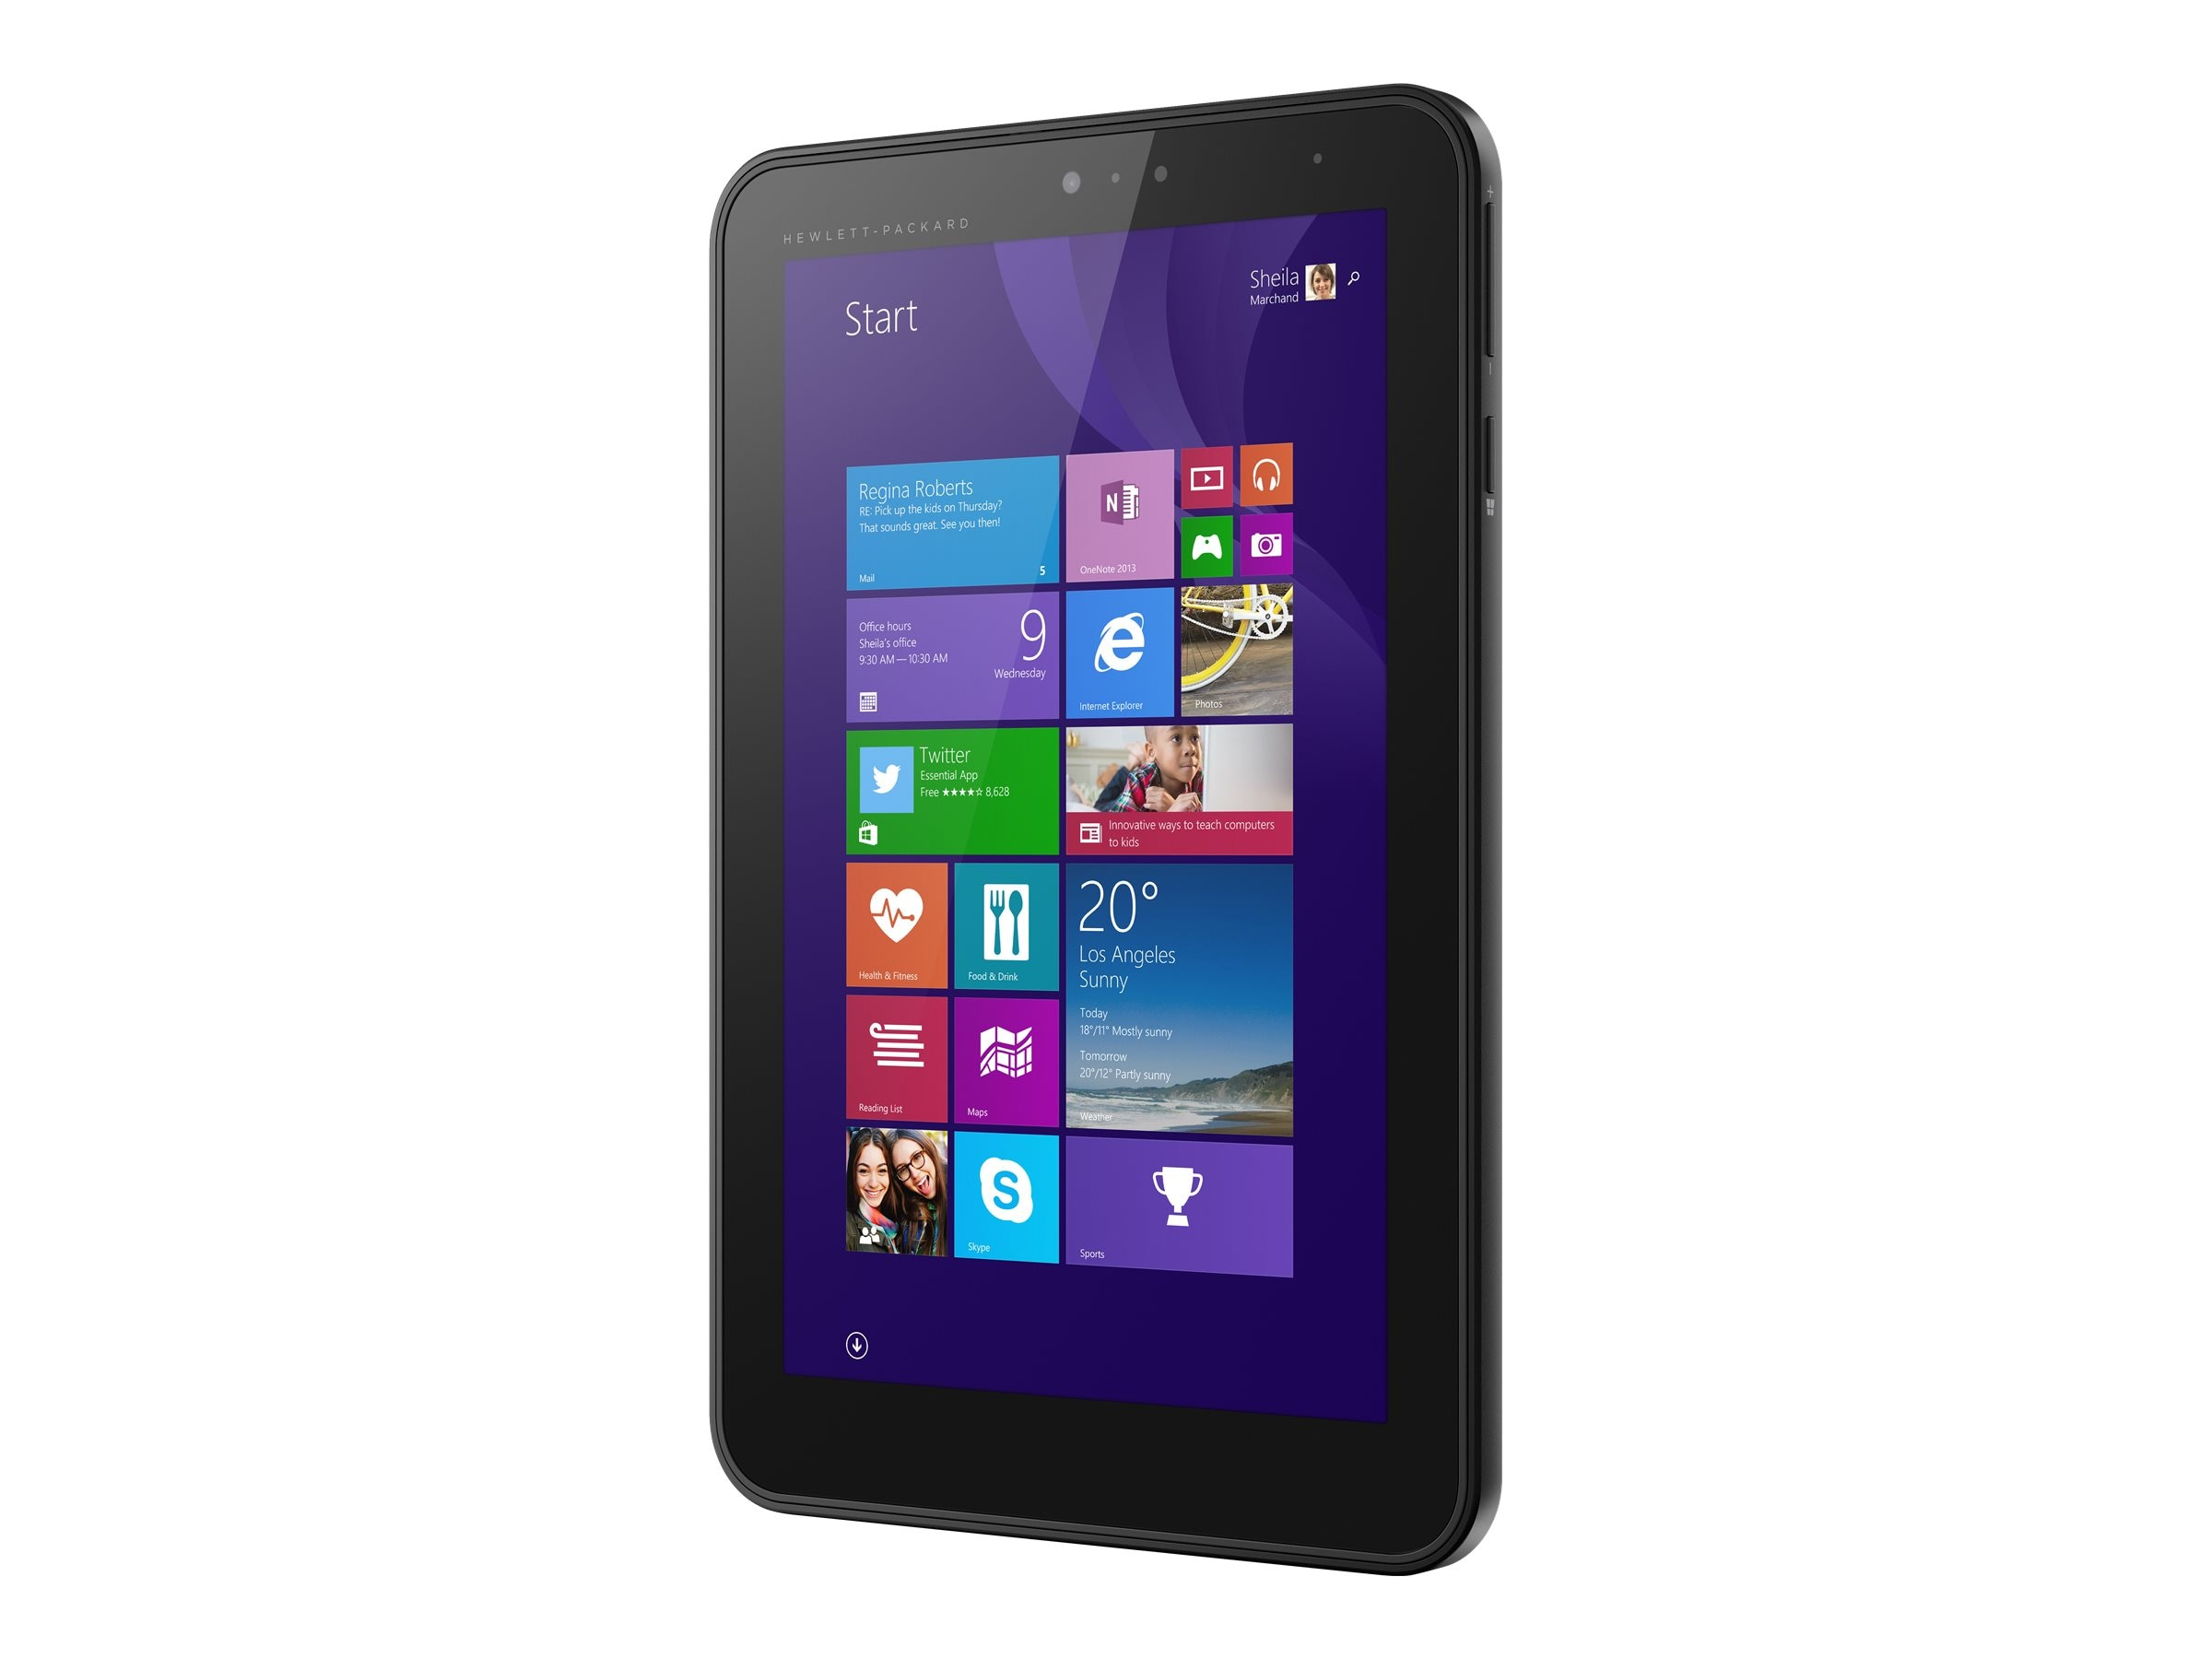 HP Pro Tablet 408 G1 1.33GHz processor Windows 8.1 Pro